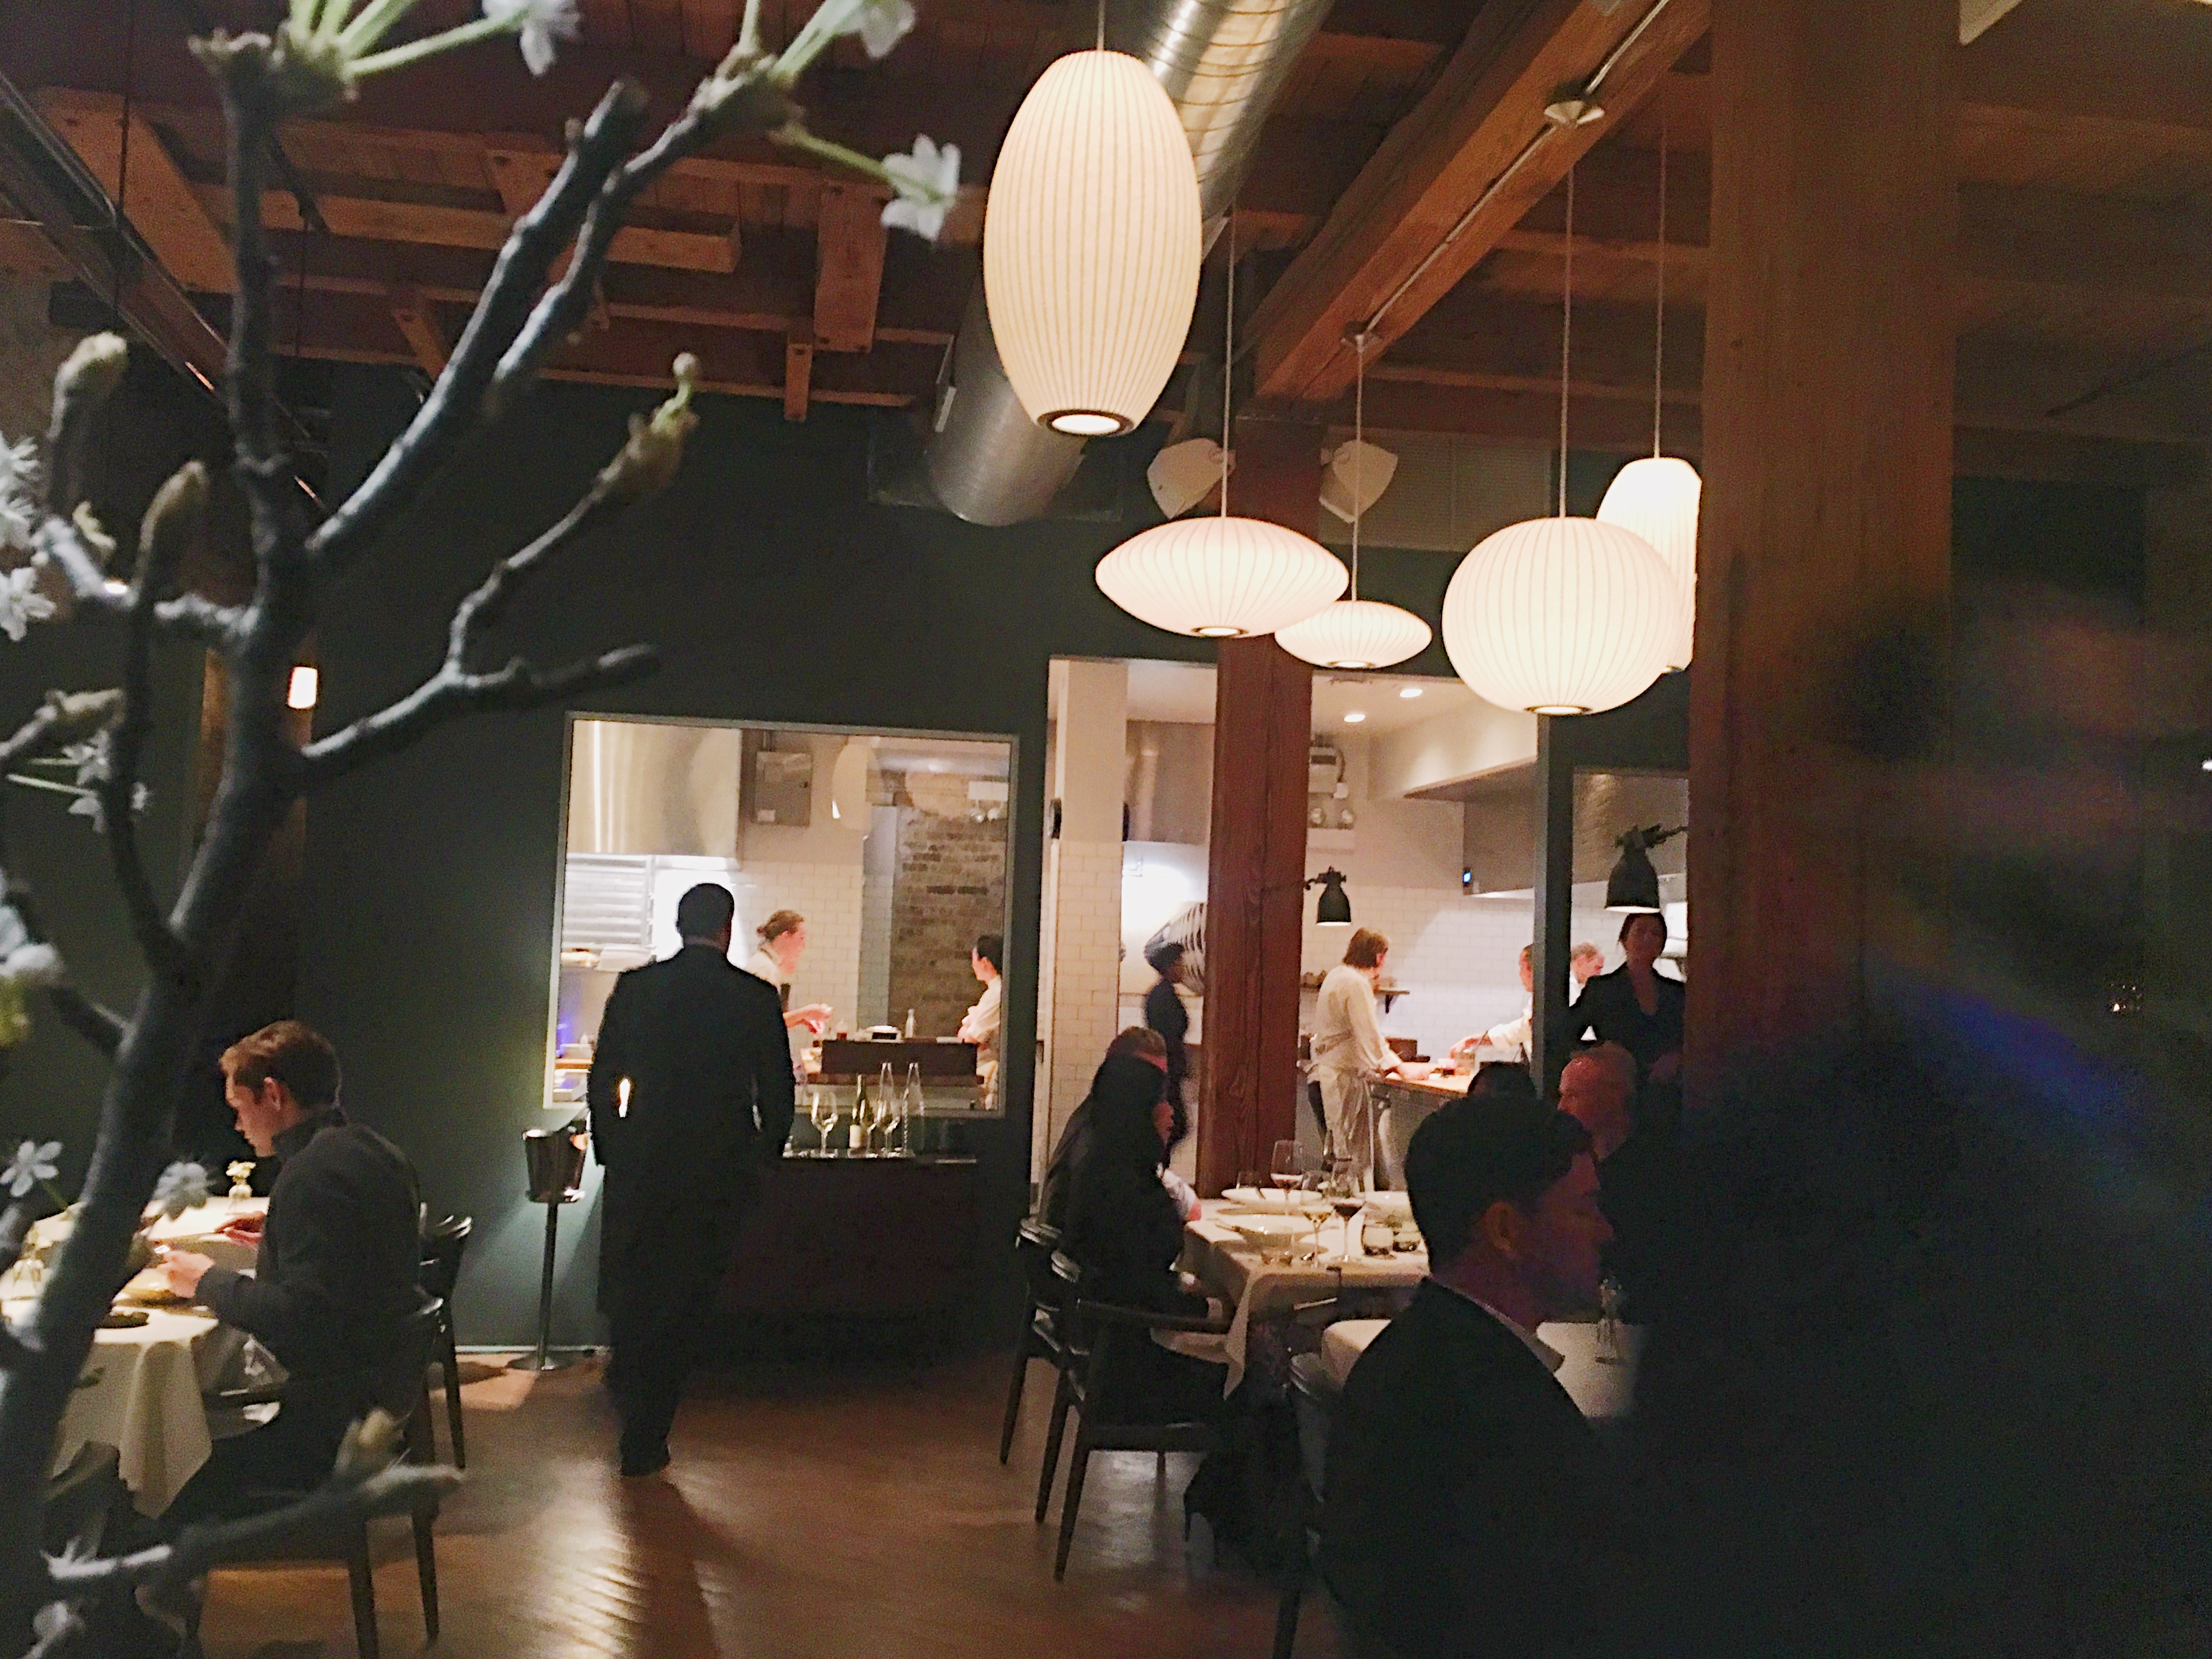 Dining room with people